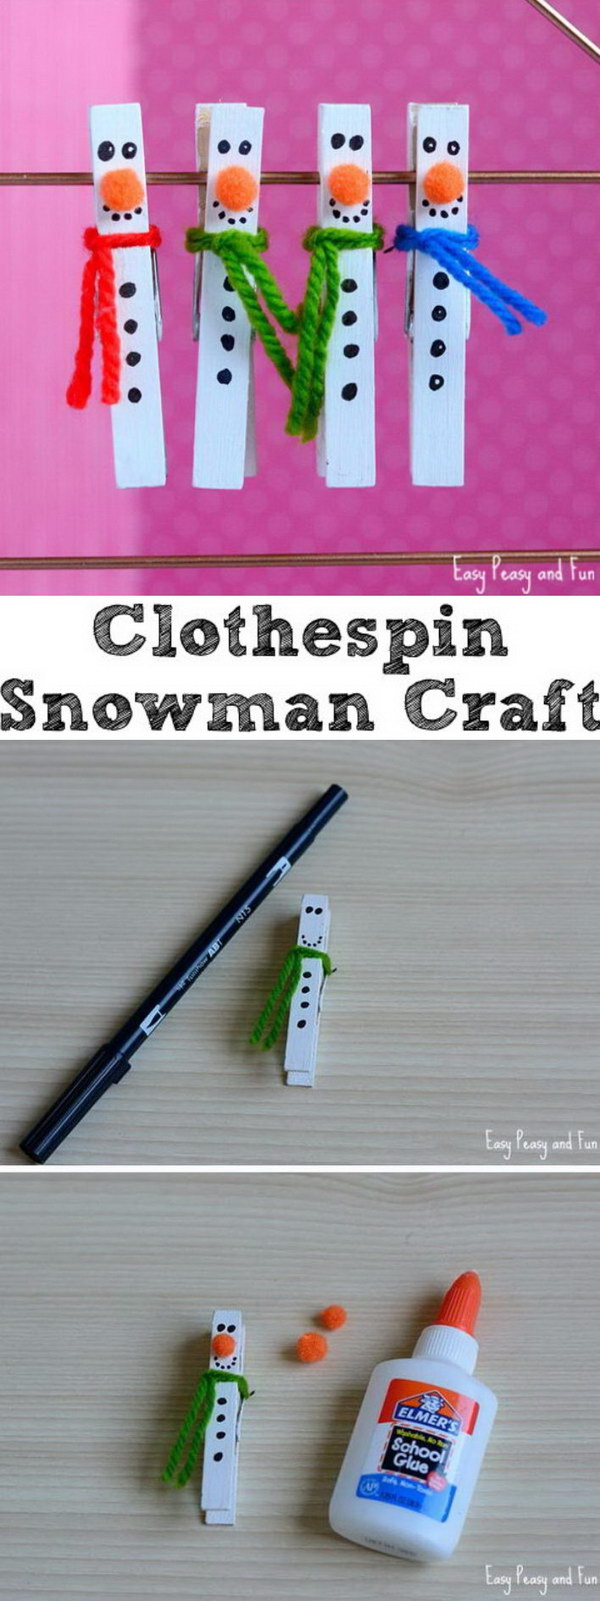 Clothespin Snowman Craft.